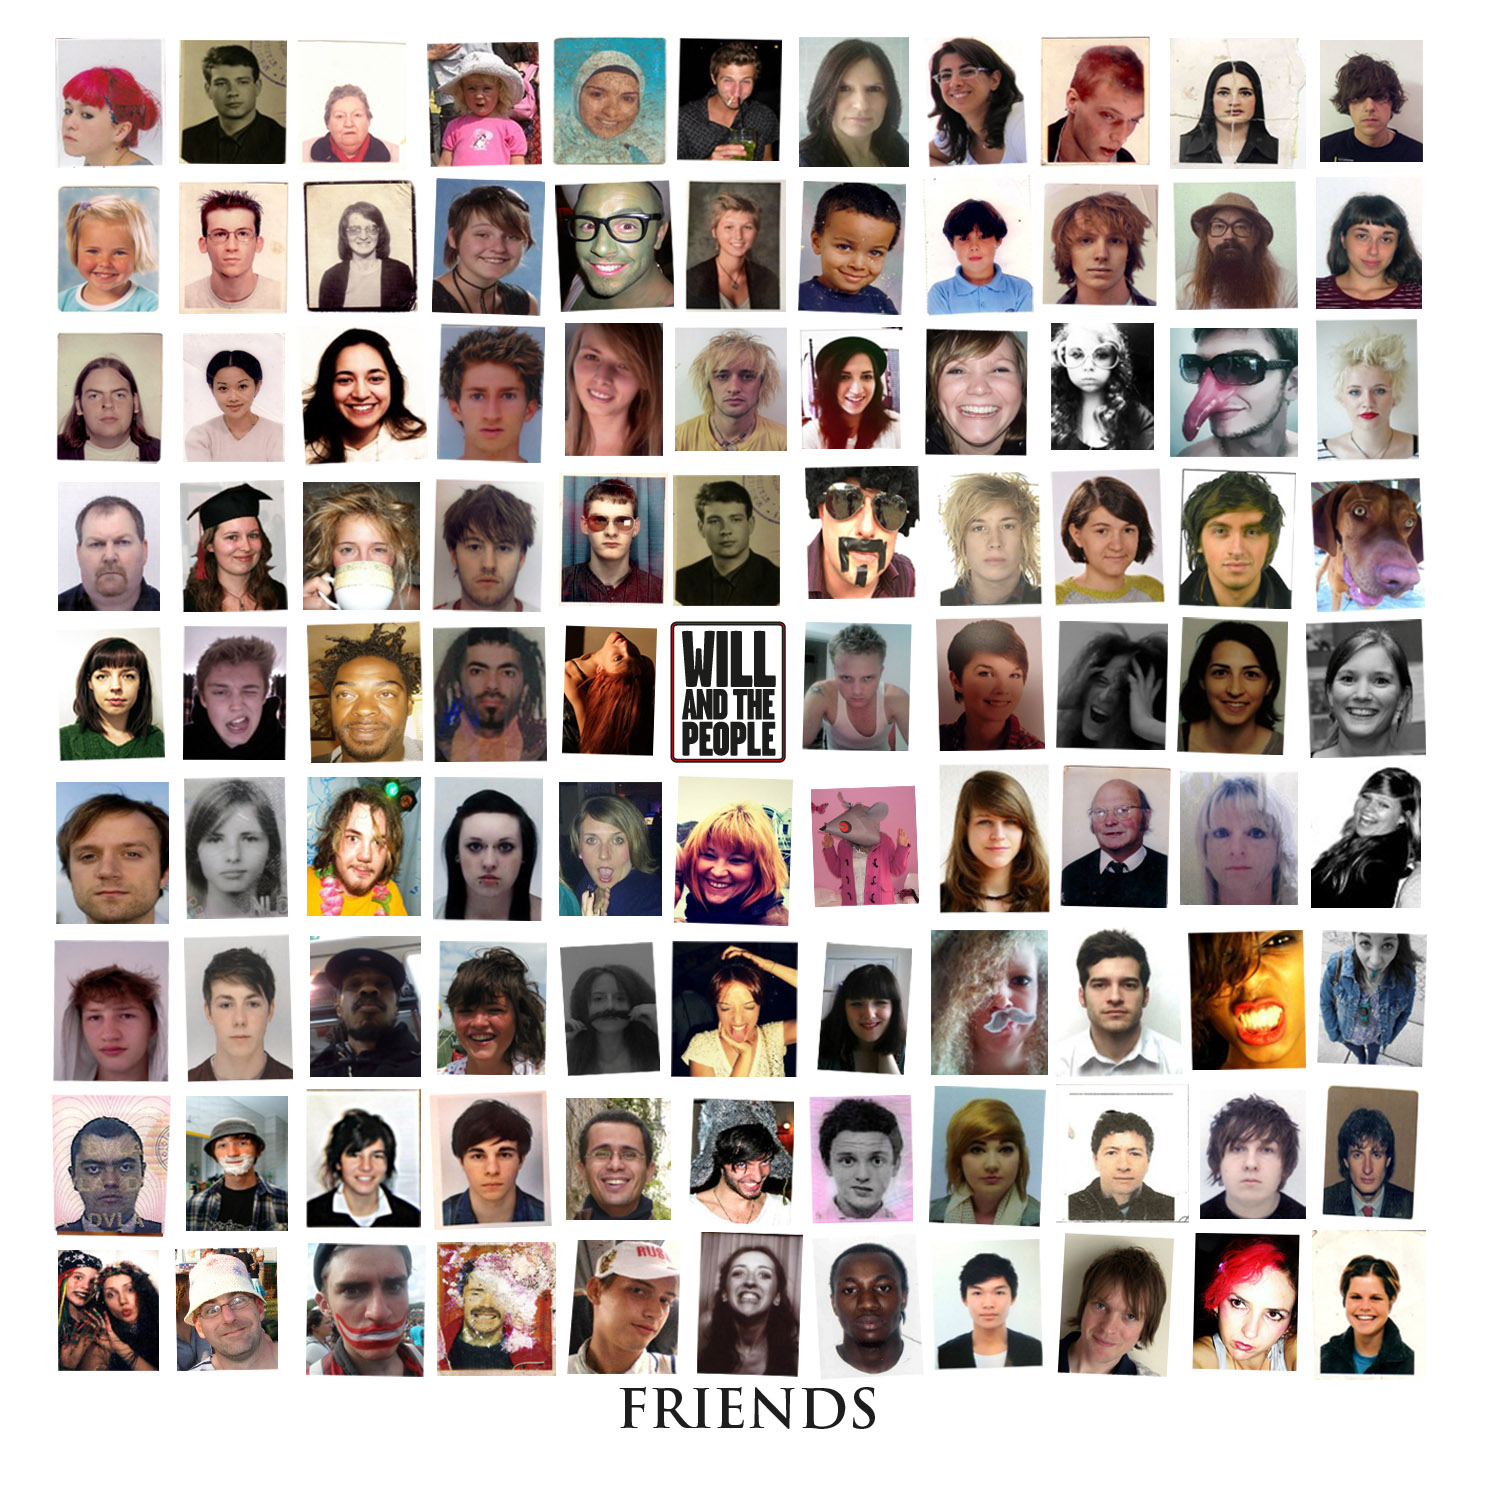 Friends MP3 Album - Will and The People